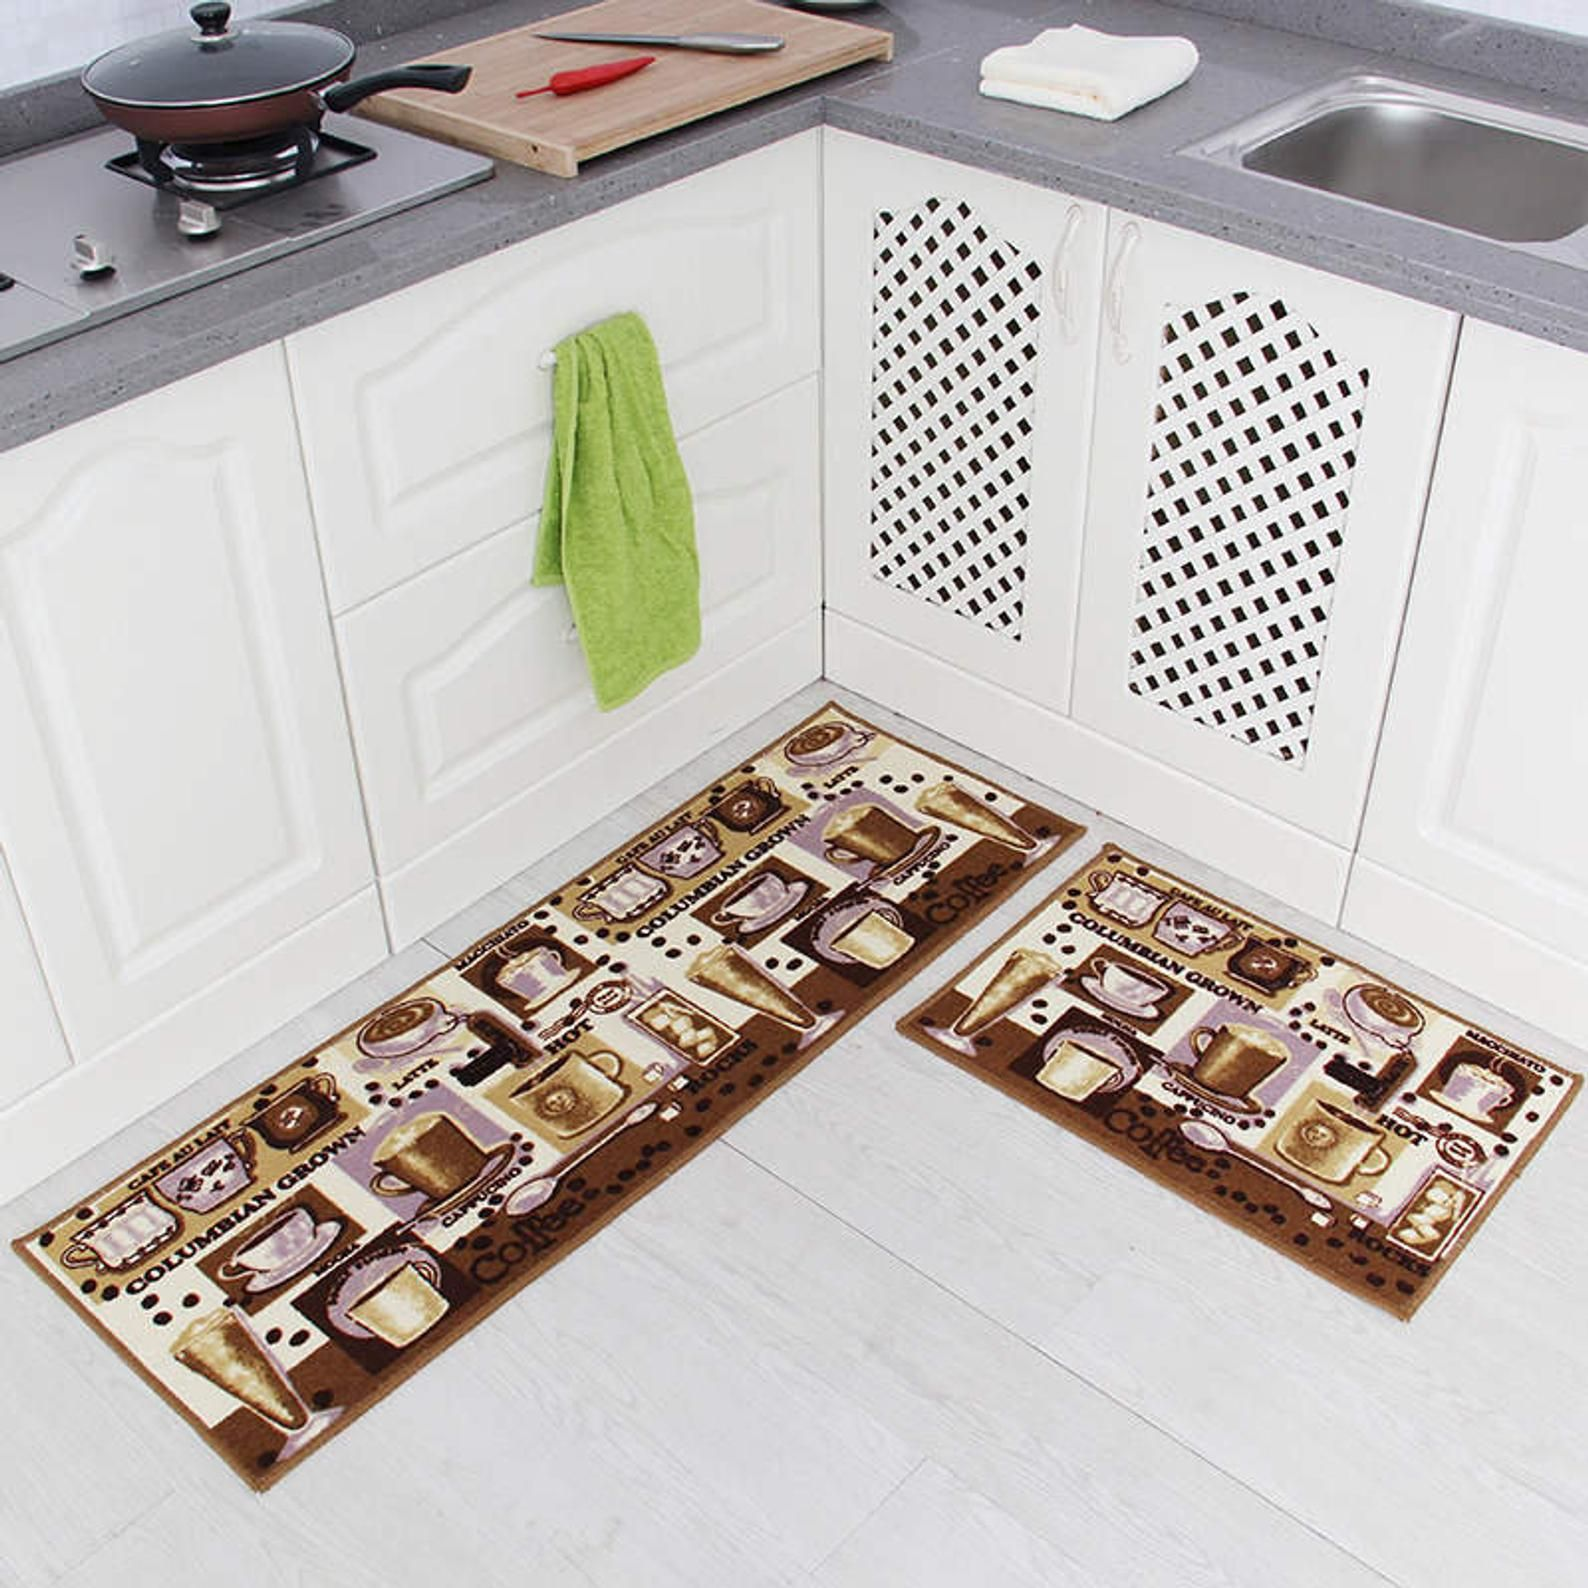 Long Kitchen Mat Bath Carpet Floor Mat Home Entrance Doormat Etsy In 2020 Kitchen Mats Floor Kitchen Mat Modern Kitchen Rugs